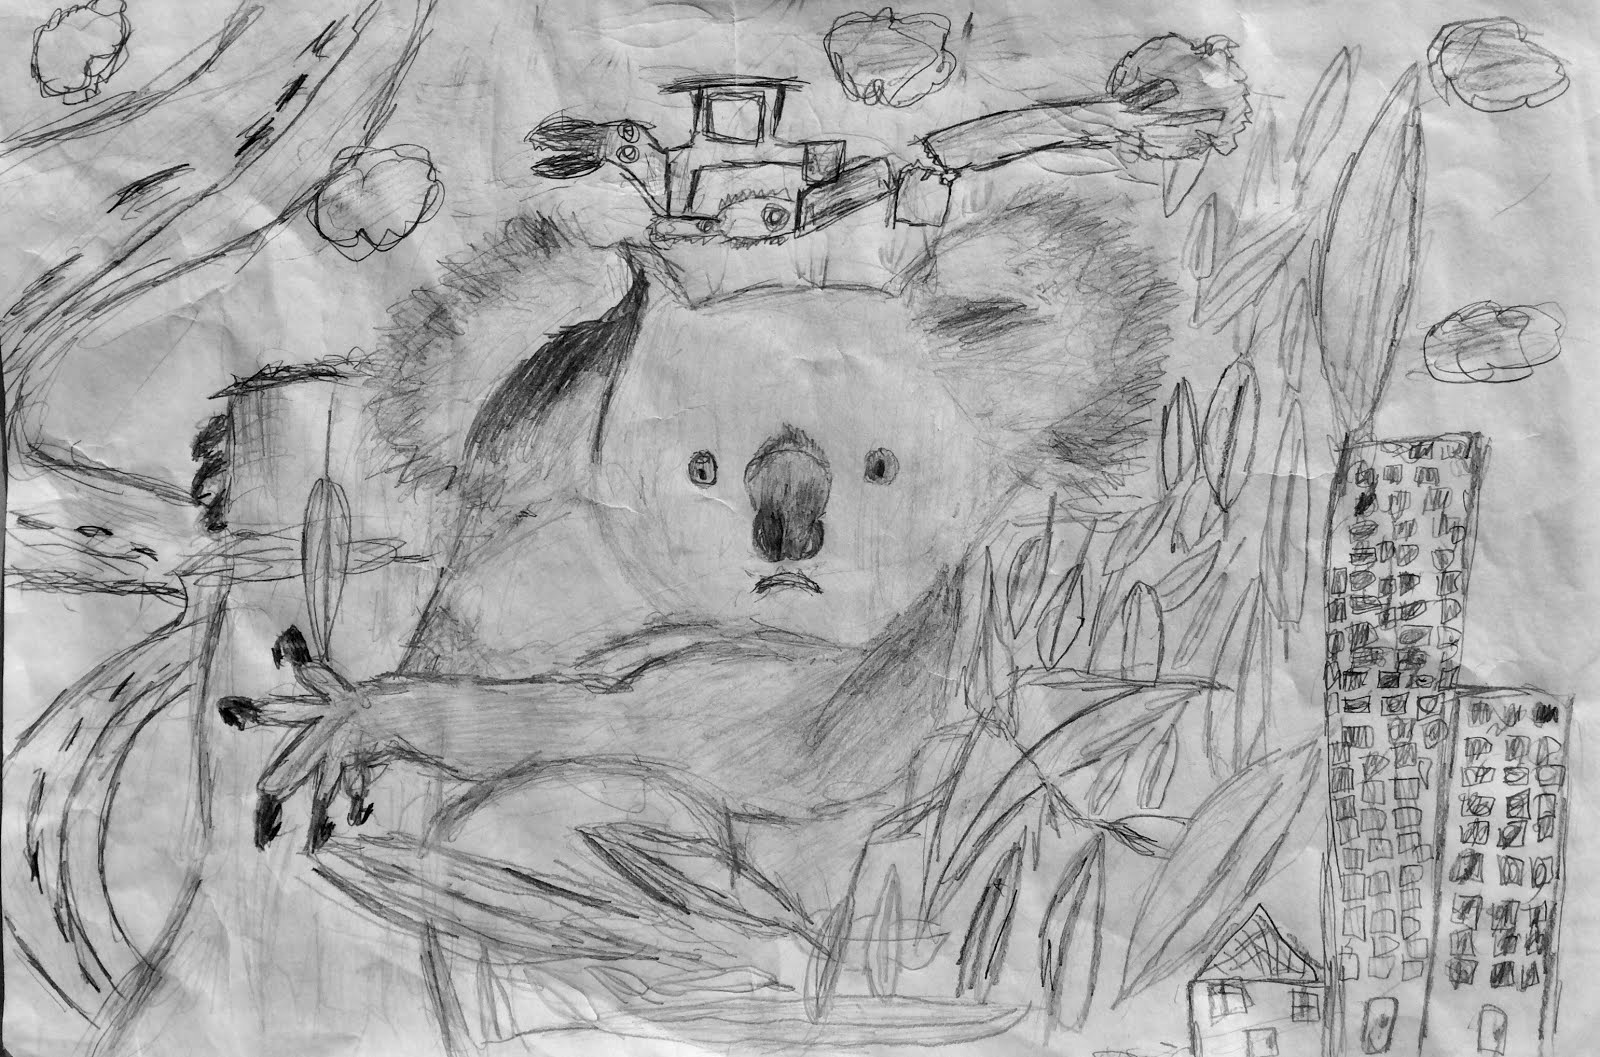 THREATENED SPECIES ART COMPETITION